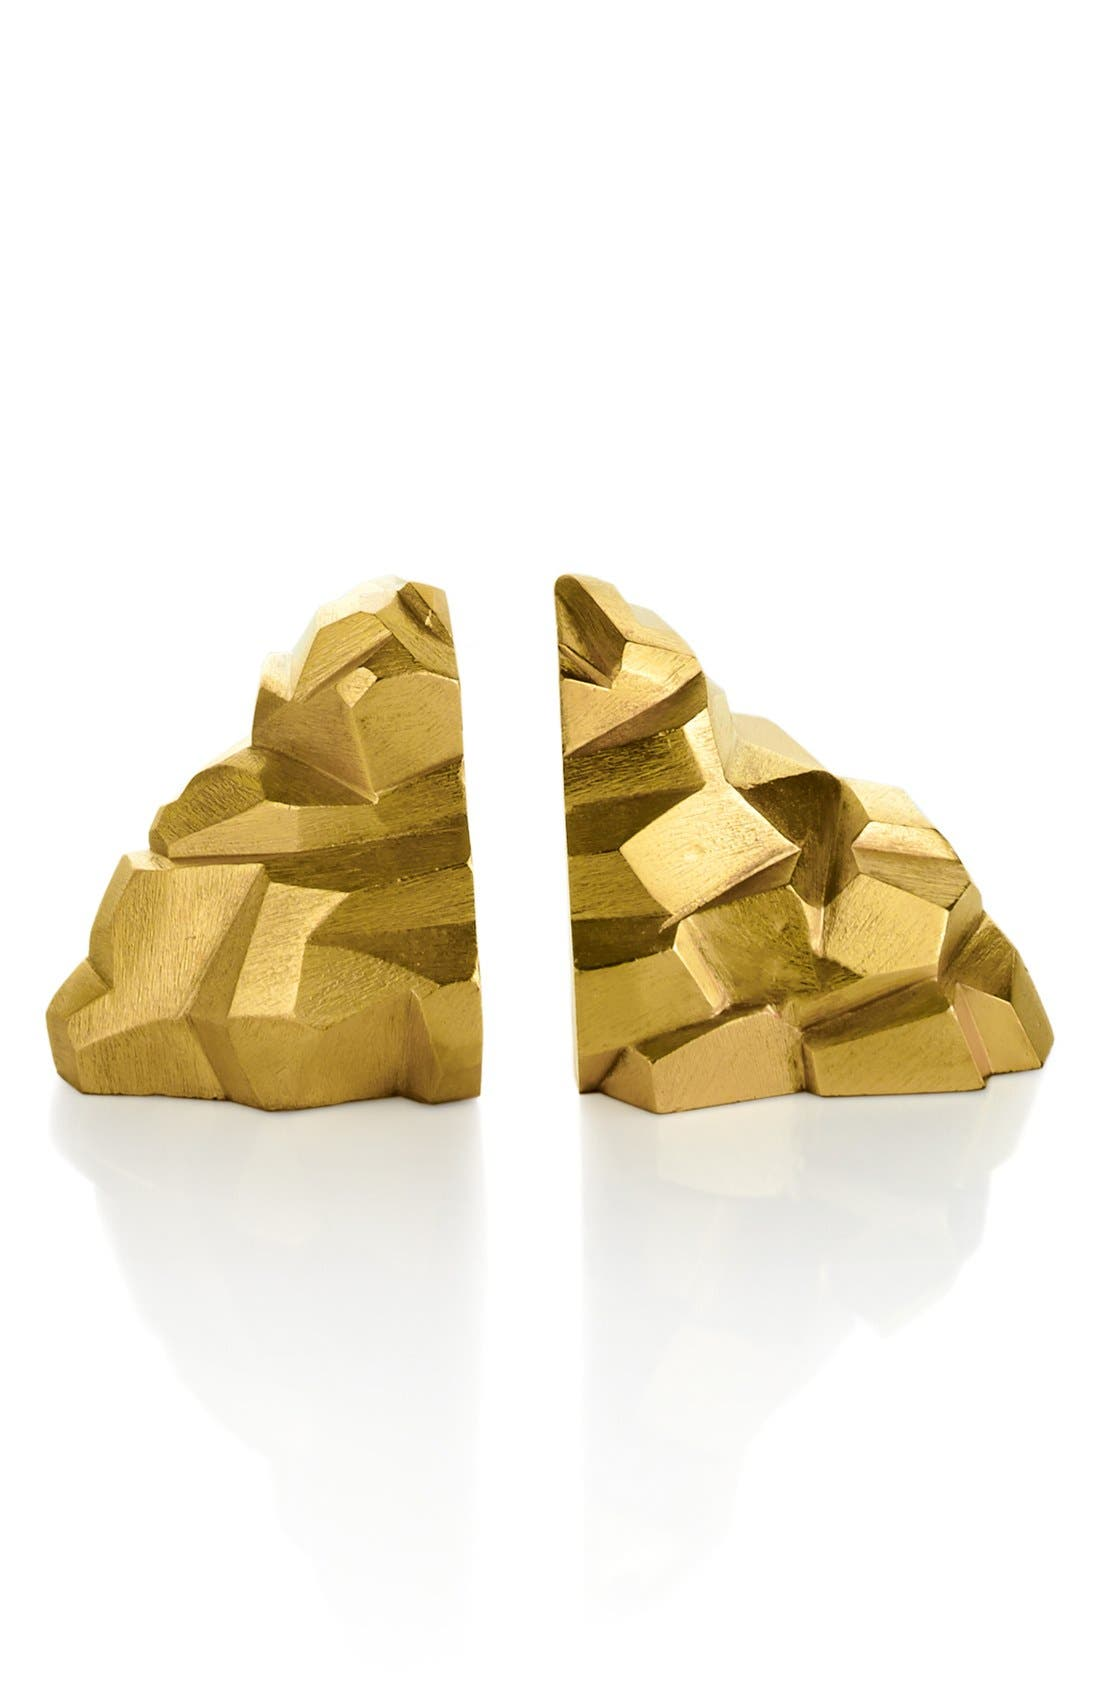 'Rock' Bookends,                             Main thumbnail 1, color,                             Gold